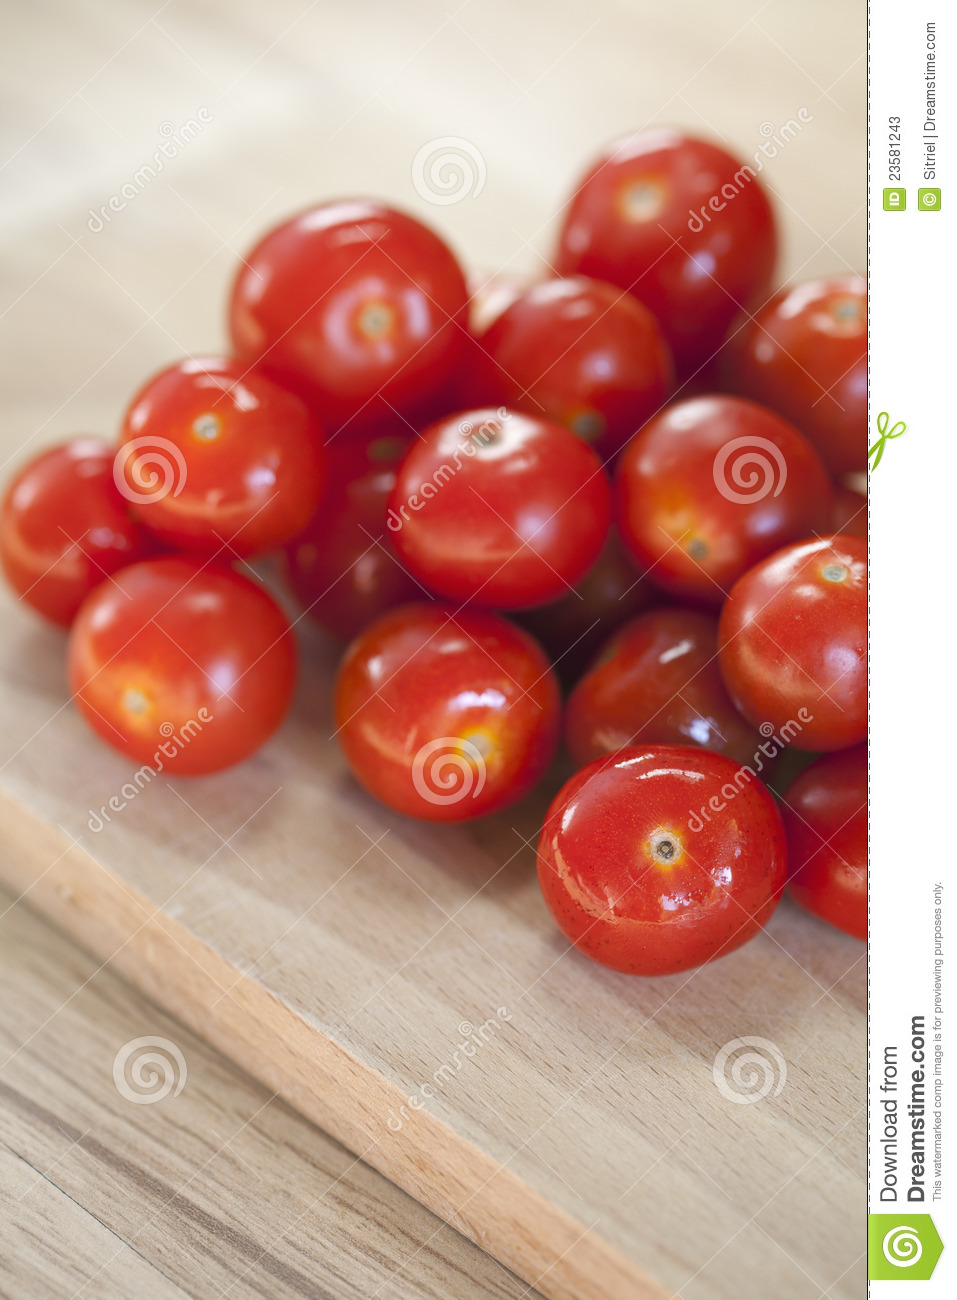 Closeup Of Fresh Red Tomatoes Stock Photos - Image: 23581243